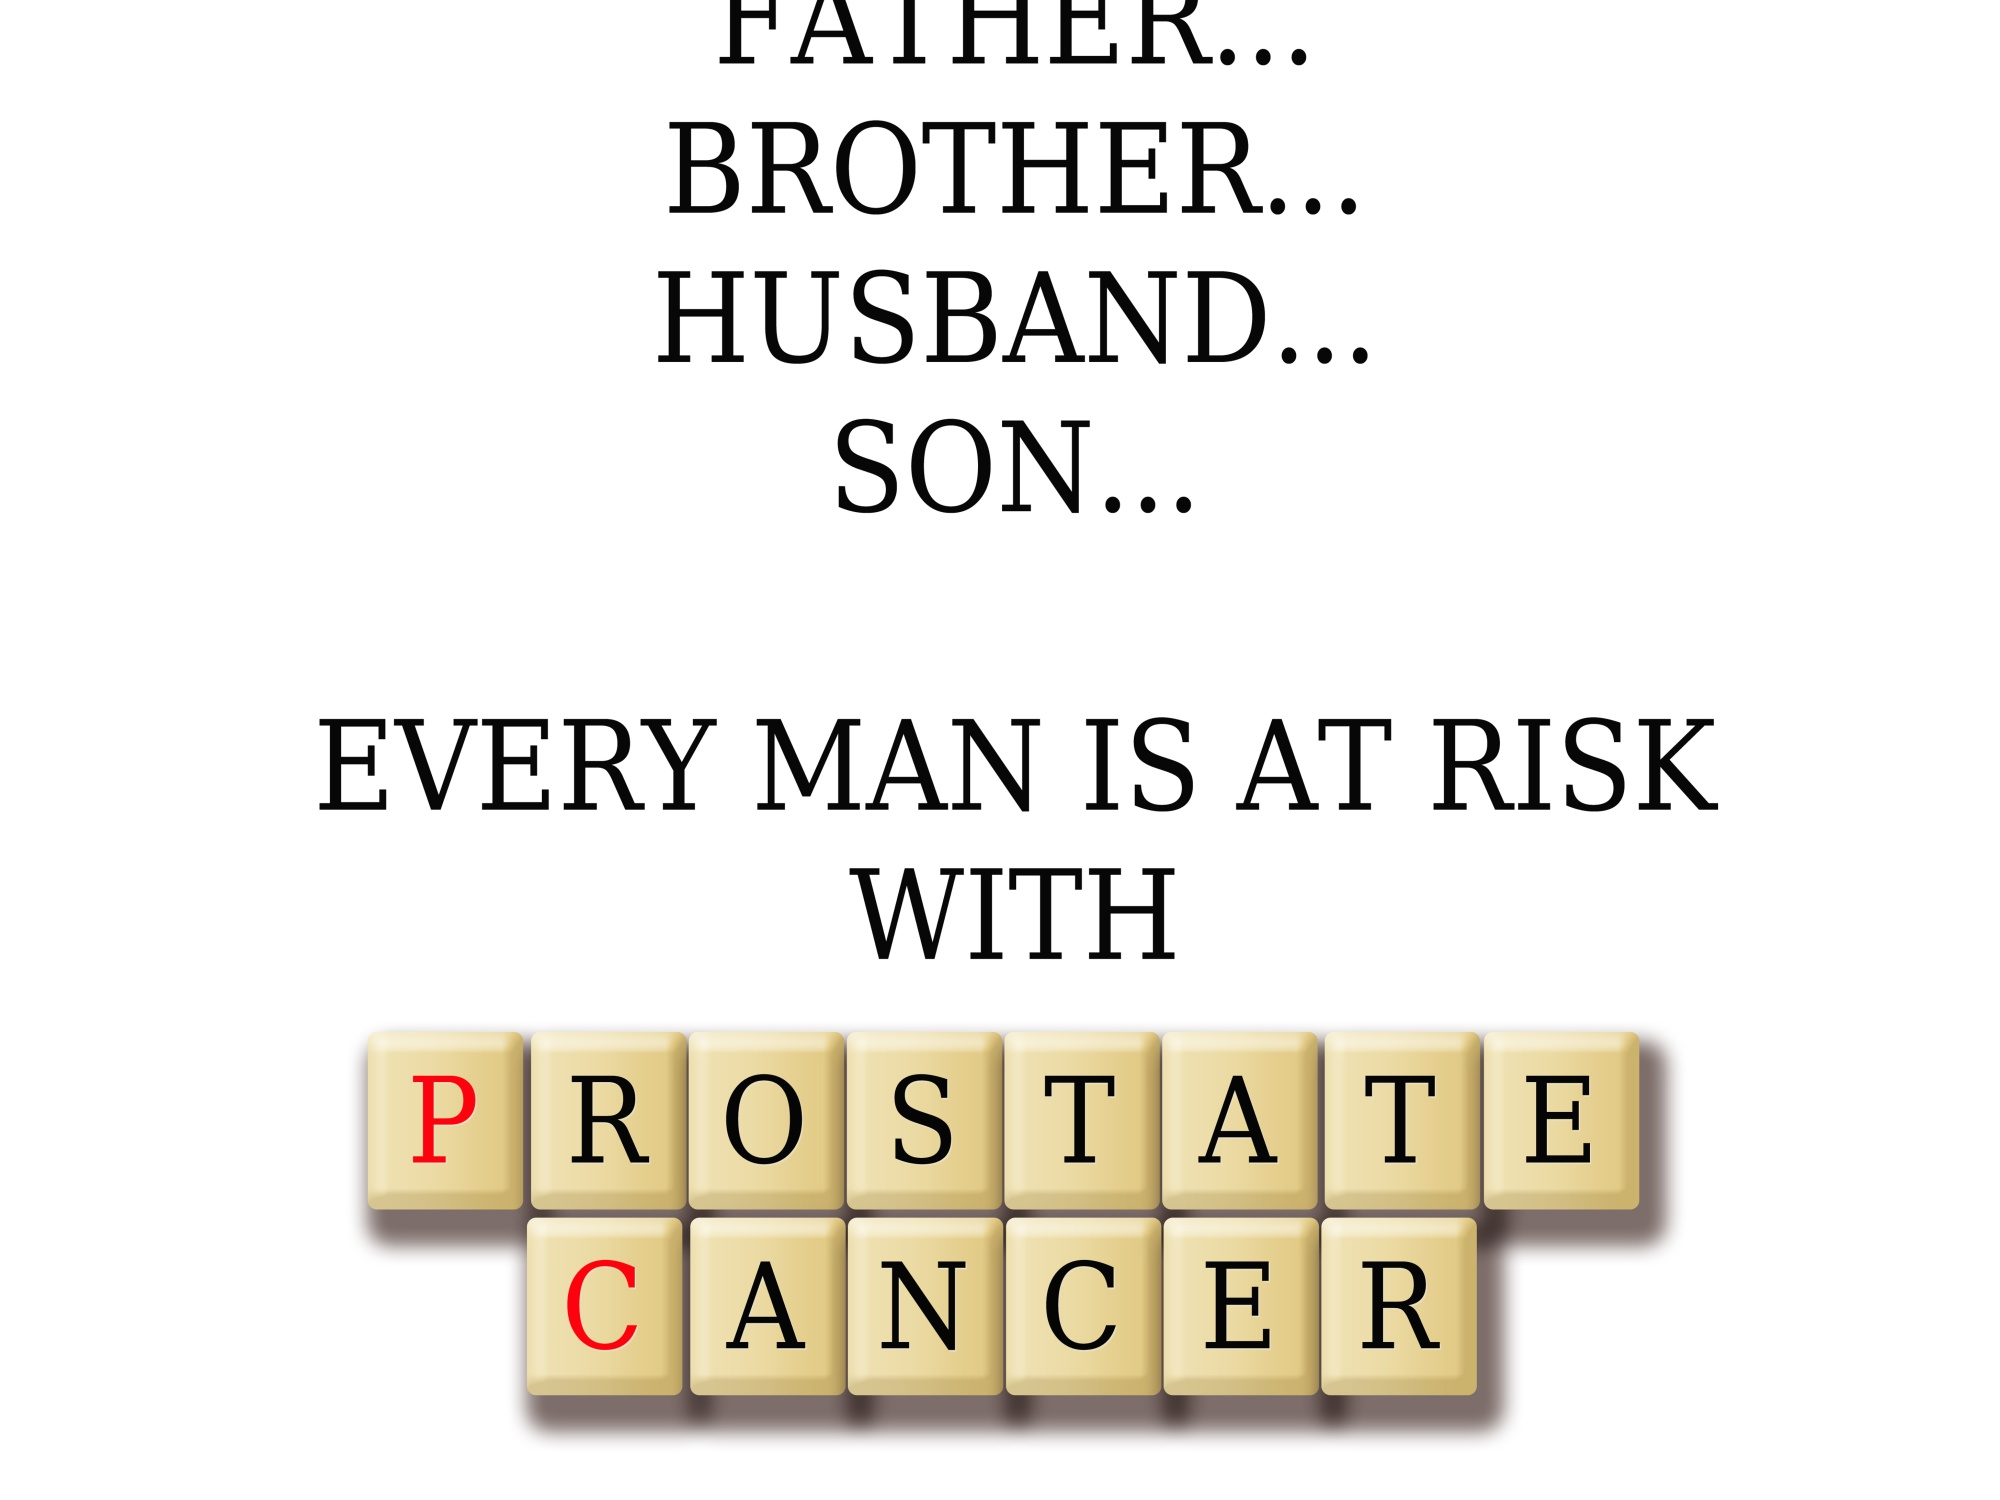 Prostate cancer symptoms, prevention